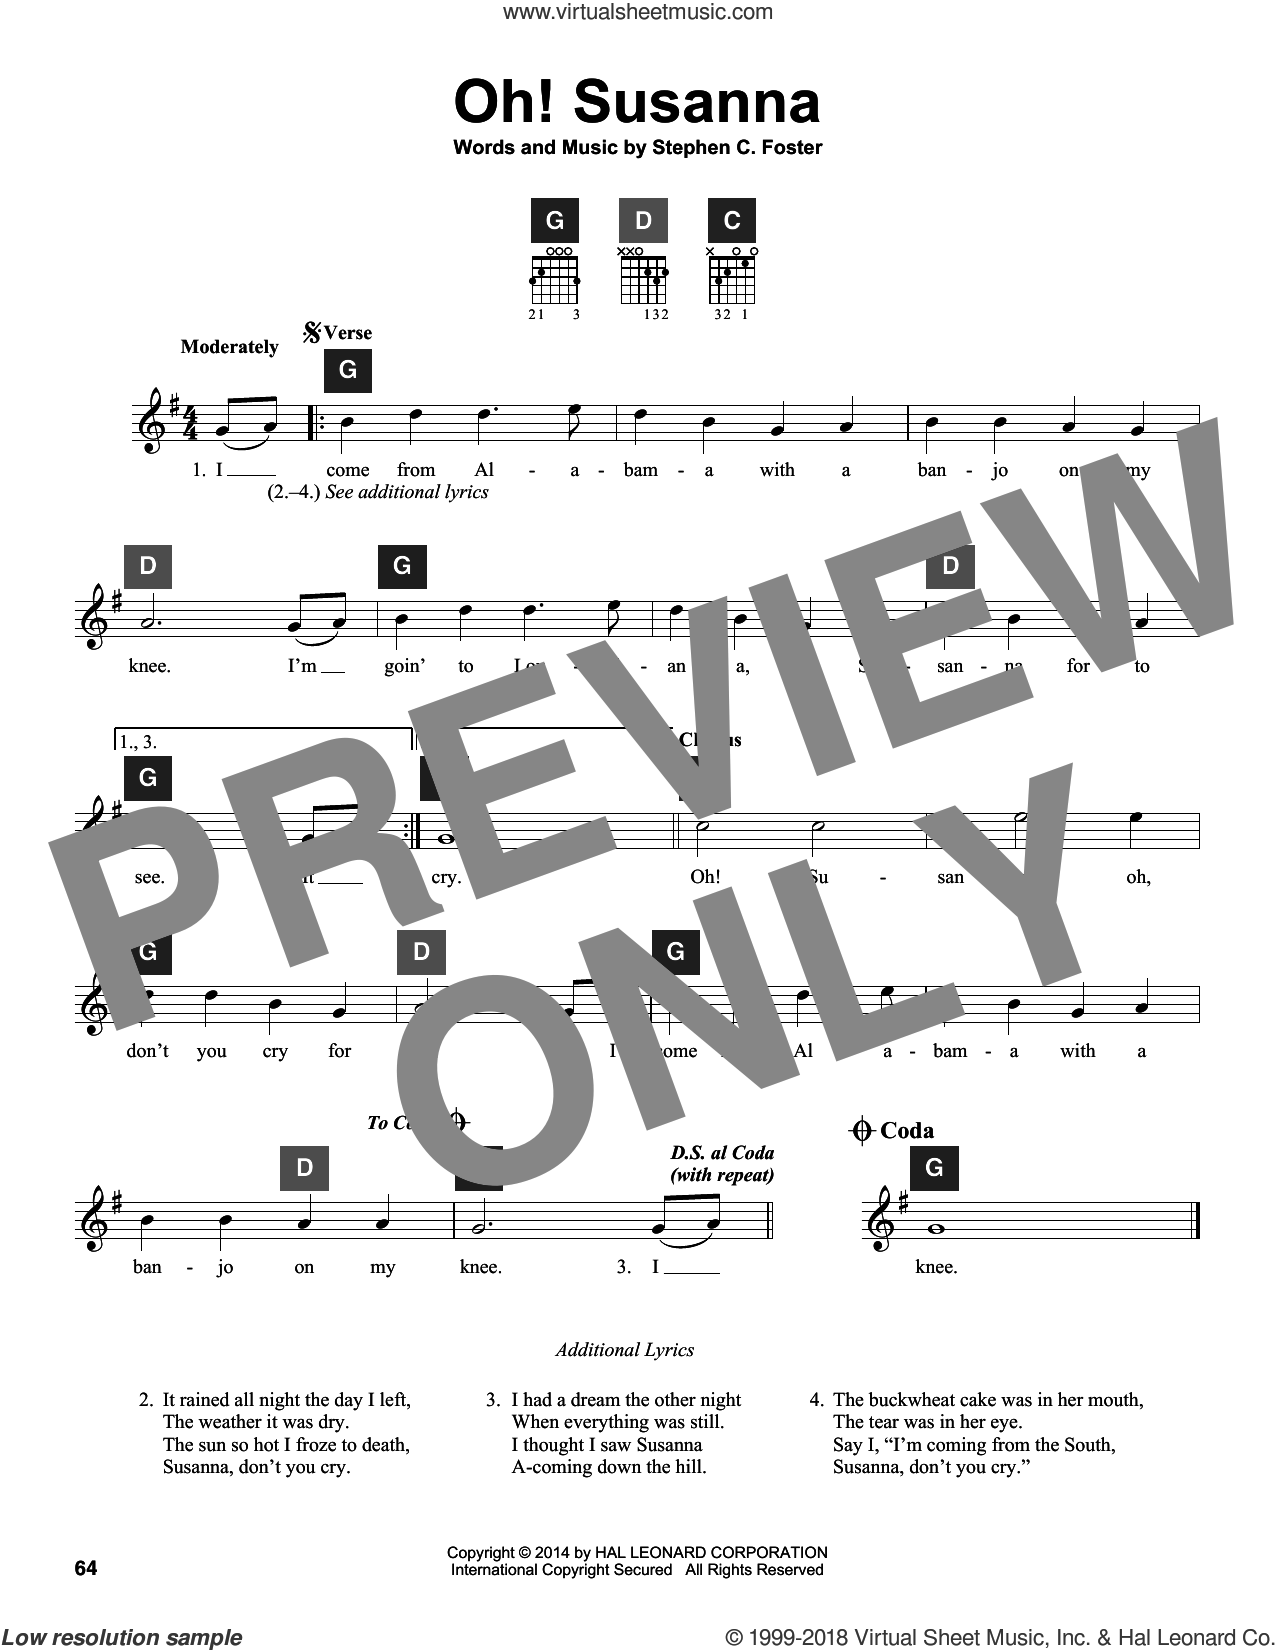 Oh! Susanna sheet music for guitar solo (ChordBuddy system) by Stephen Foster